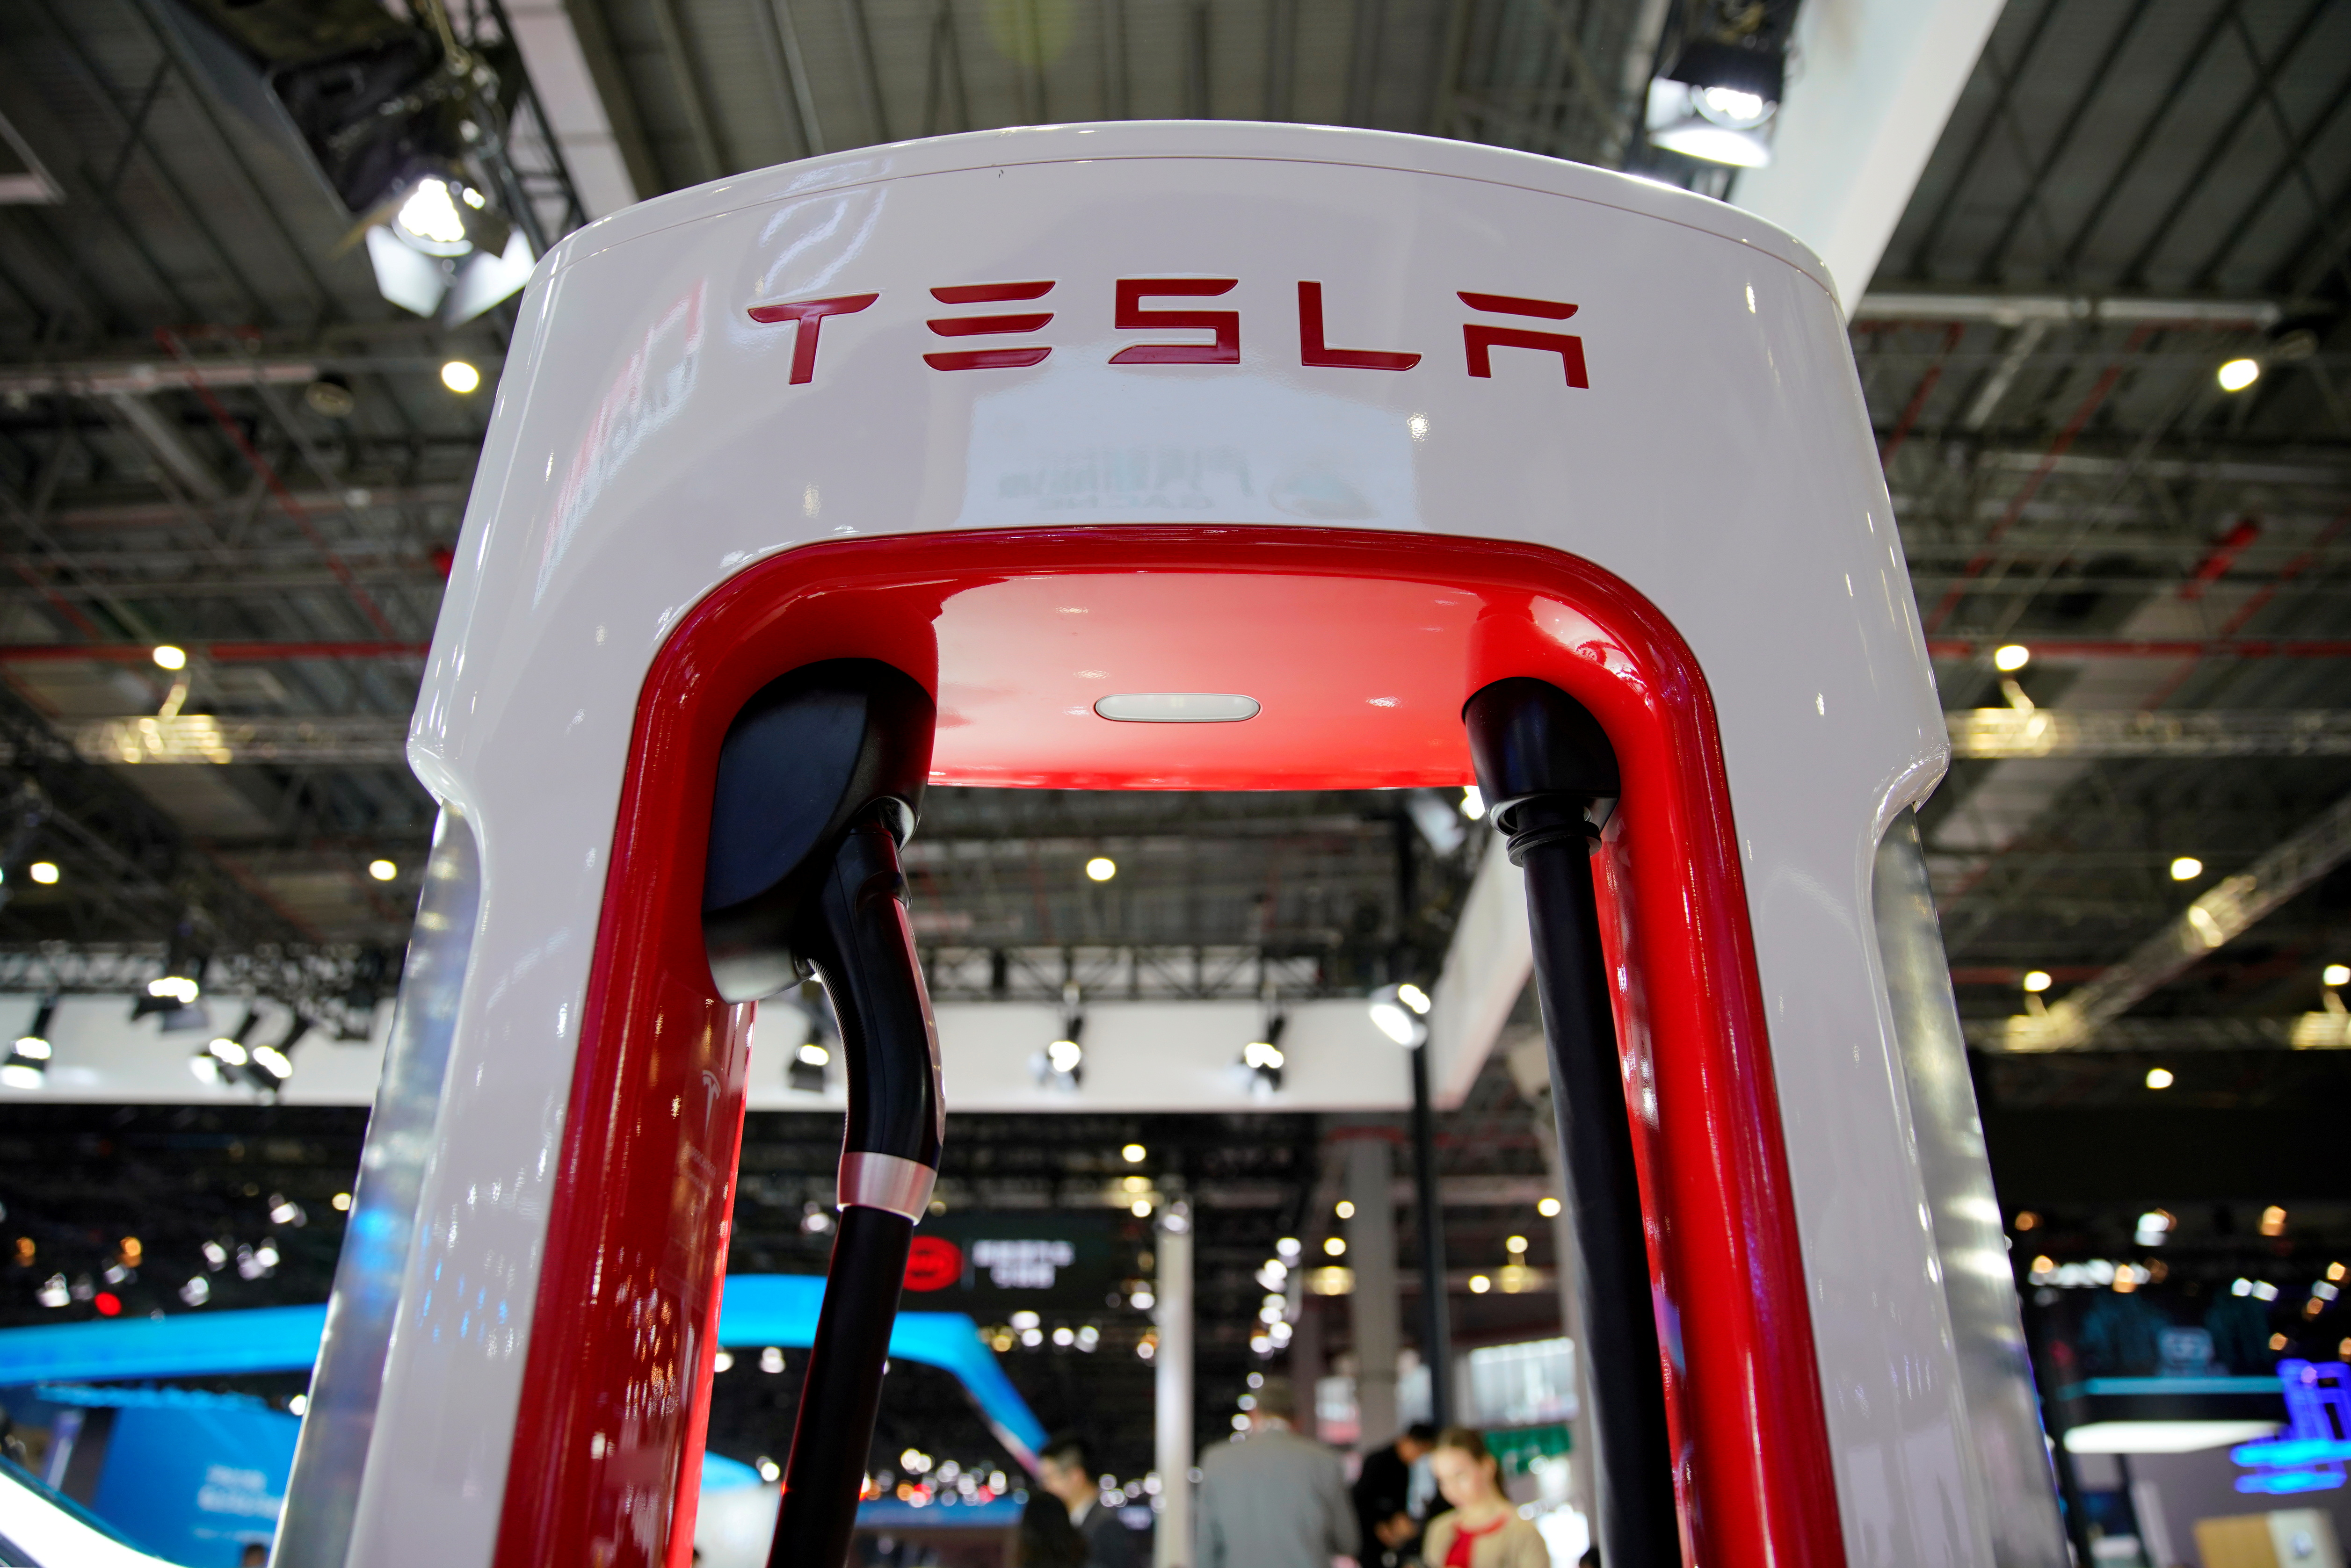 A Tesla charging station is pictured during the media day for the Shanghai auto show in Shanghai, China April 16, 2019. REUTERS/Aly Song/File Photo